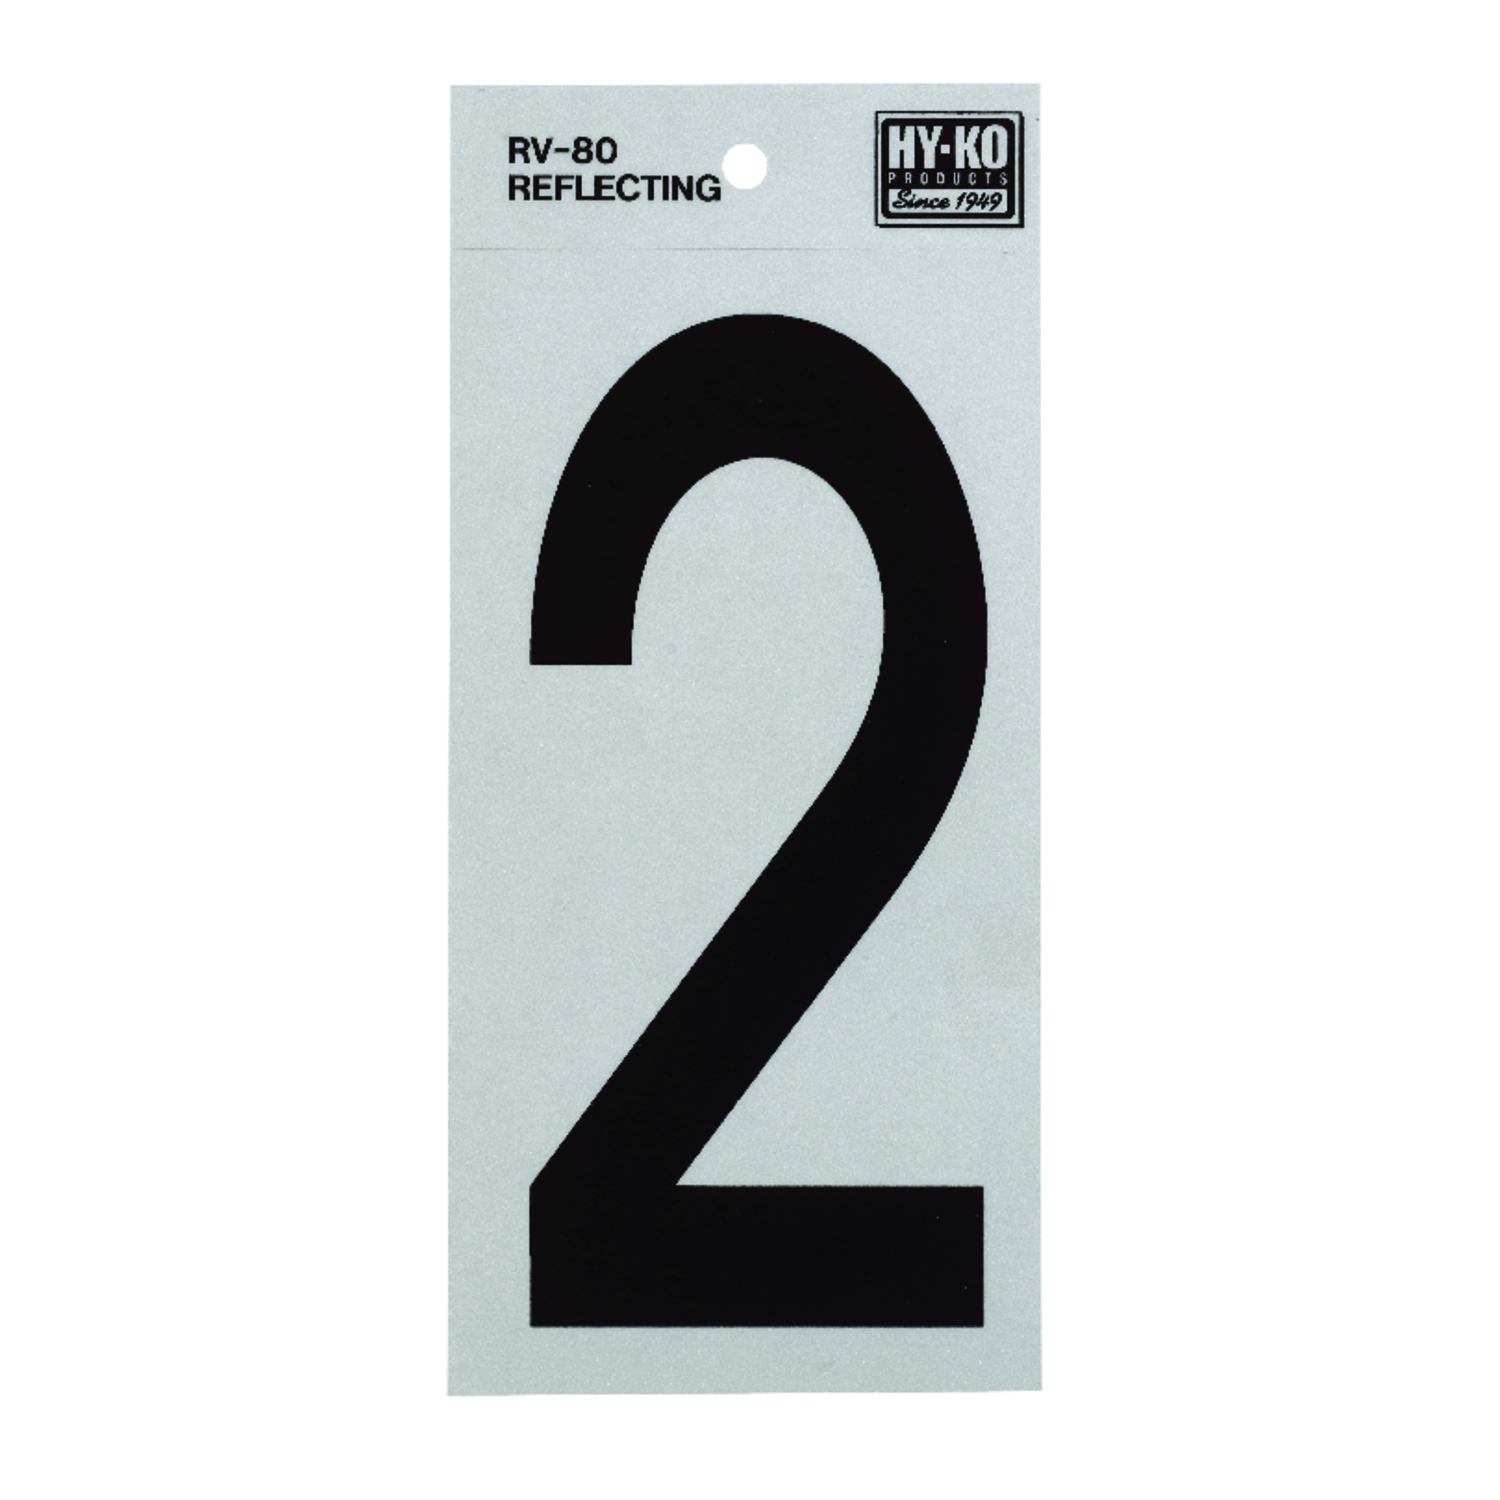 Hy-Ko  6 in. Reflective 2  Number  Self-Adhesive  Vinyl  Black